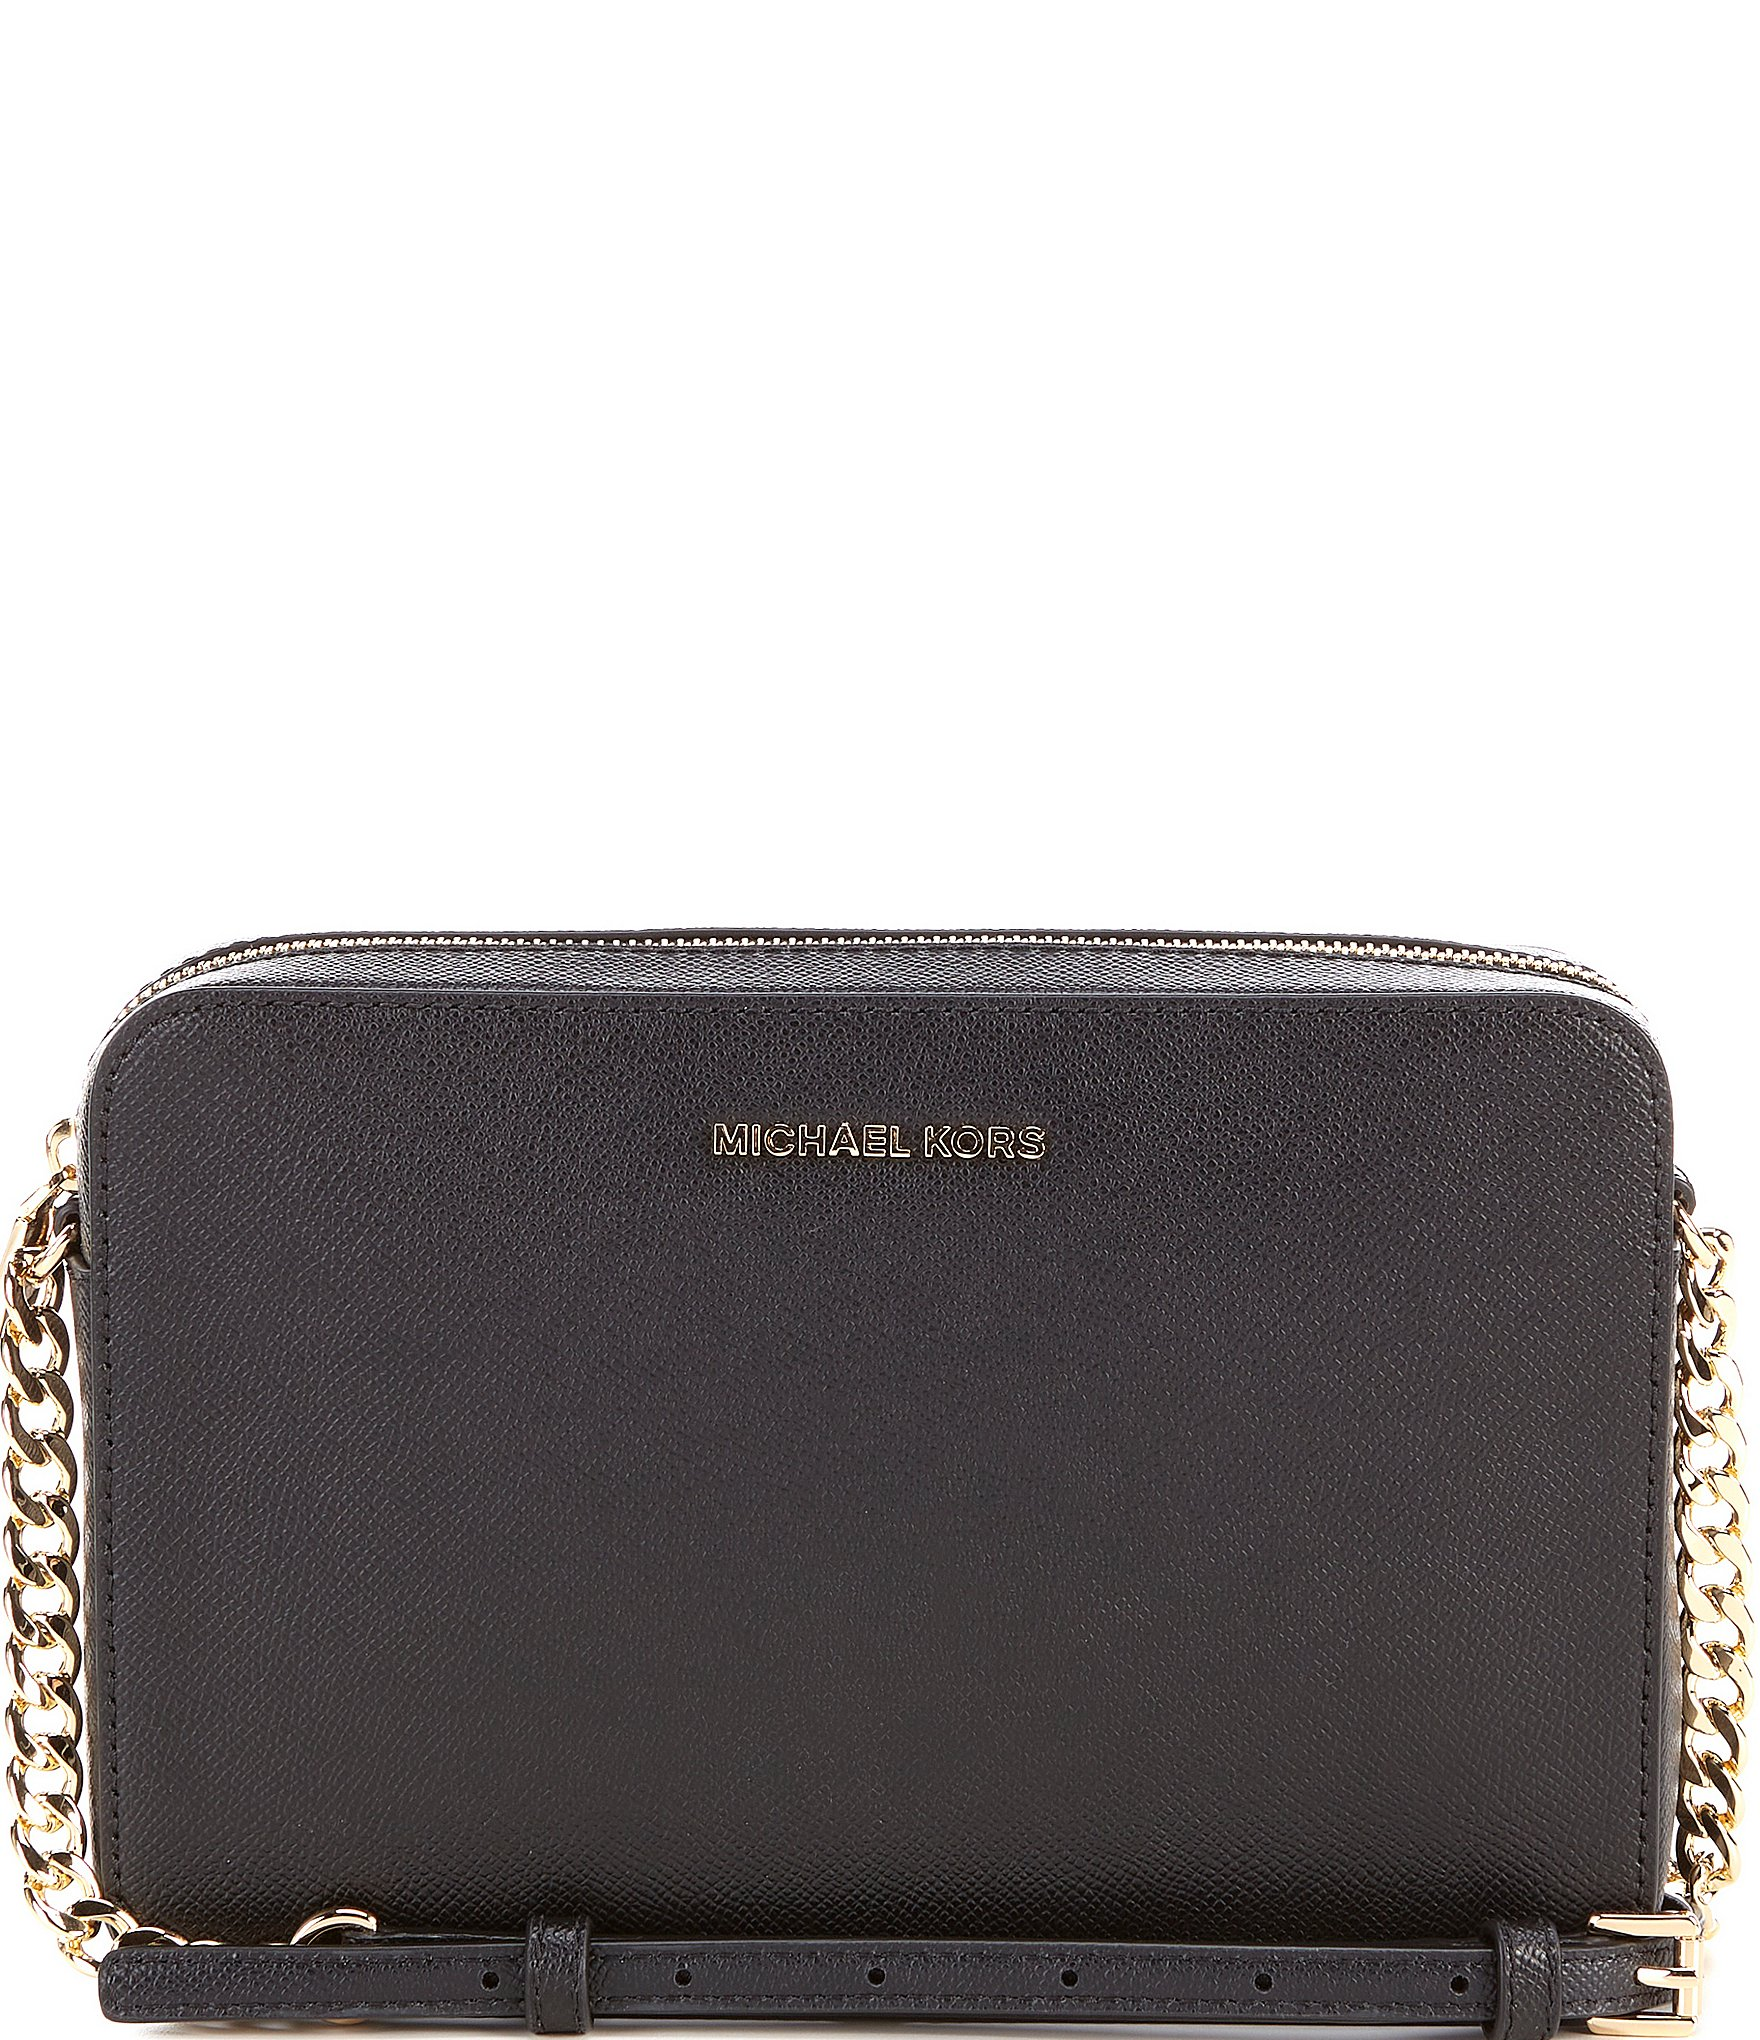 dec5adce5801a0 kors jet set: Handbags, Purses & Wallets | Dillard's